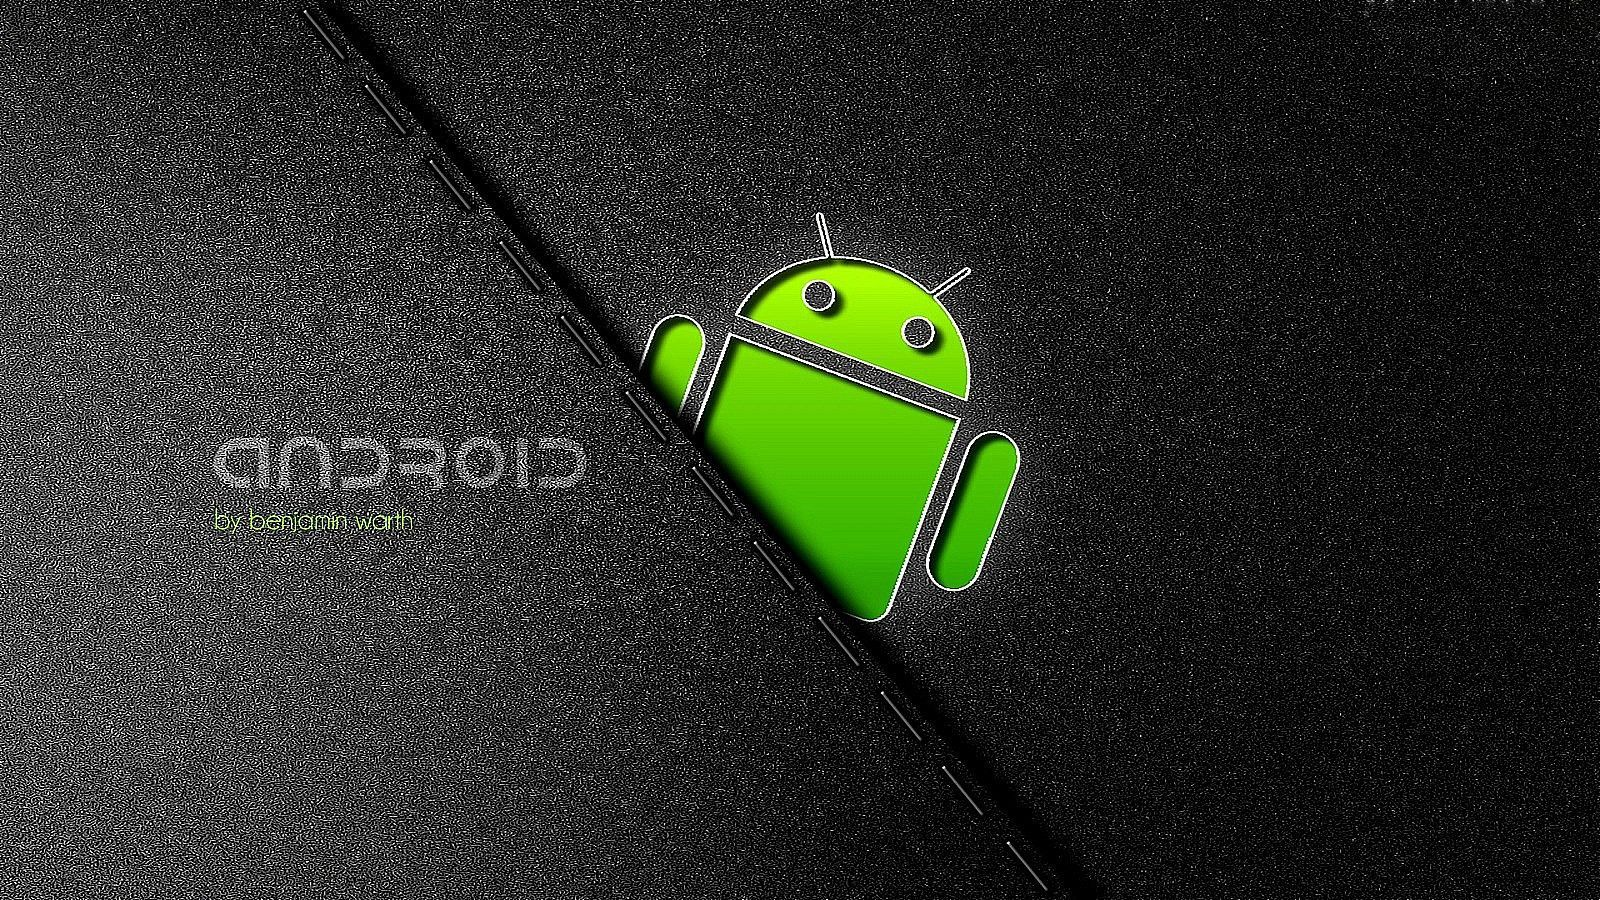 4k Ultra Hd Android Wallpapers Top Free 4k Ultra Hd